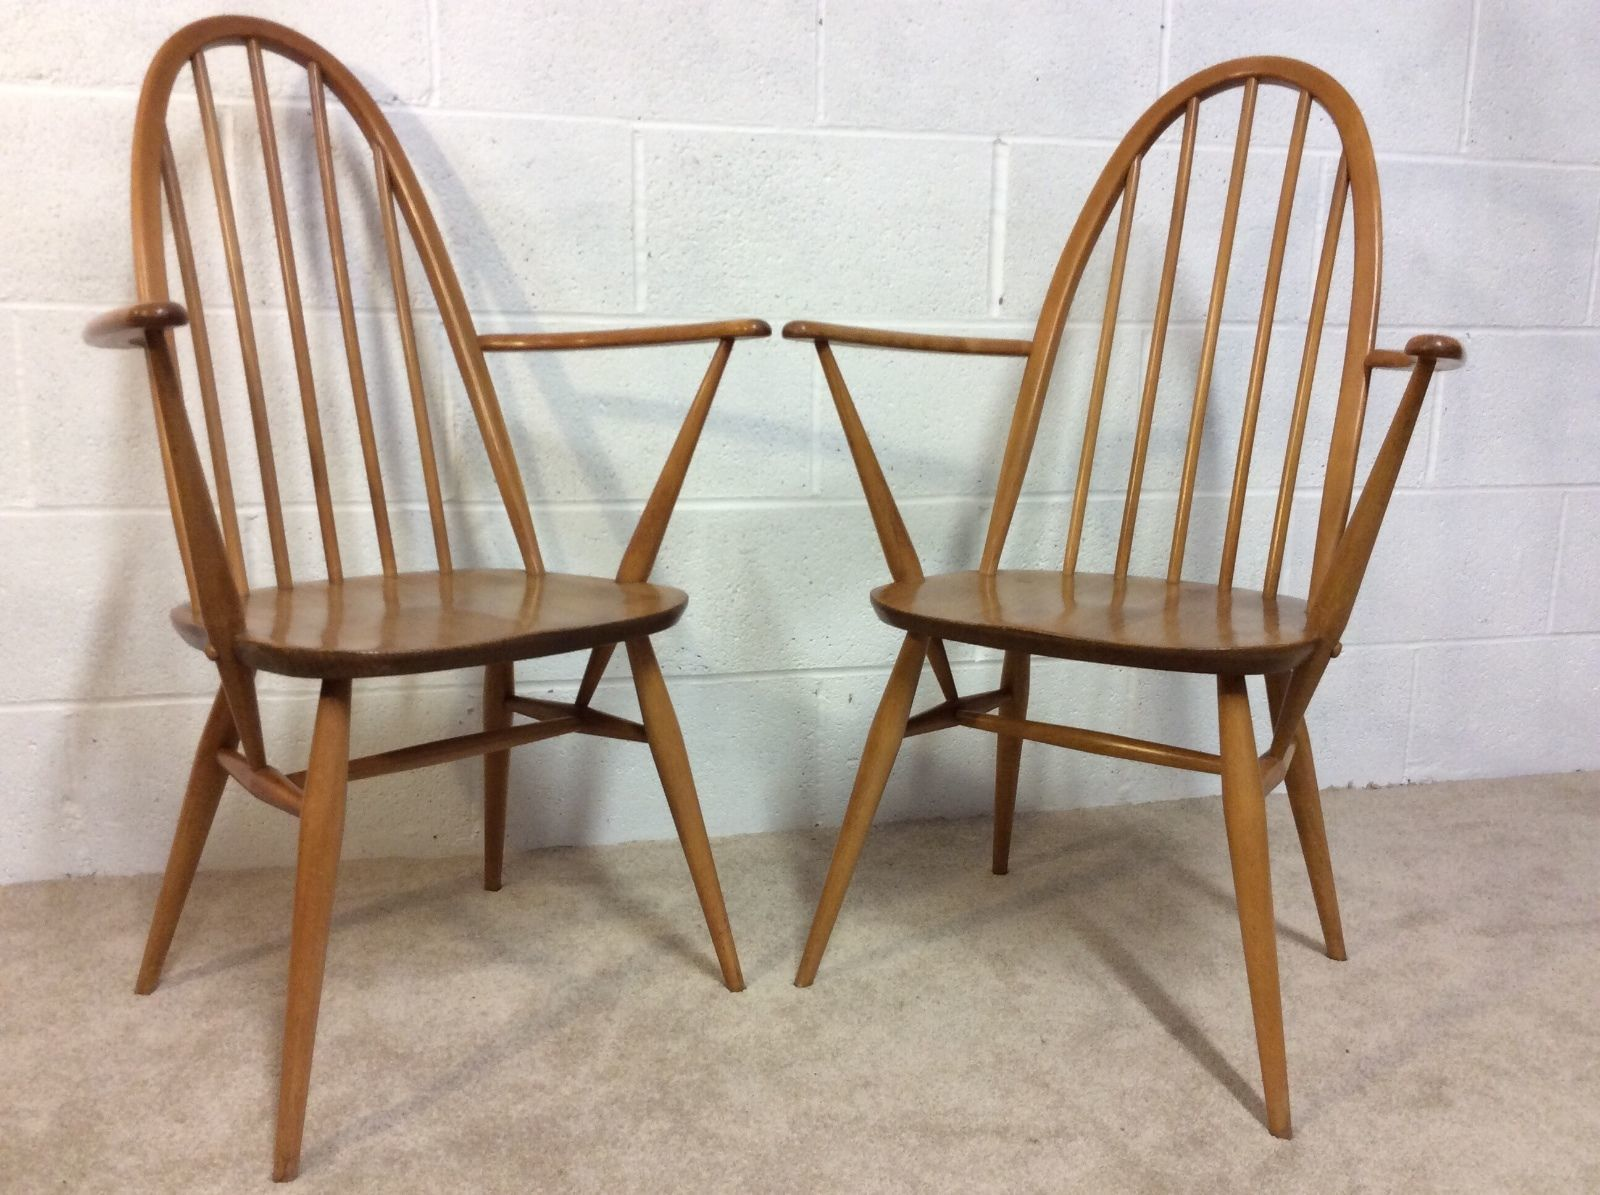 2x Vintage Ercol Quaker Windsor Carver Dining Chairs Model